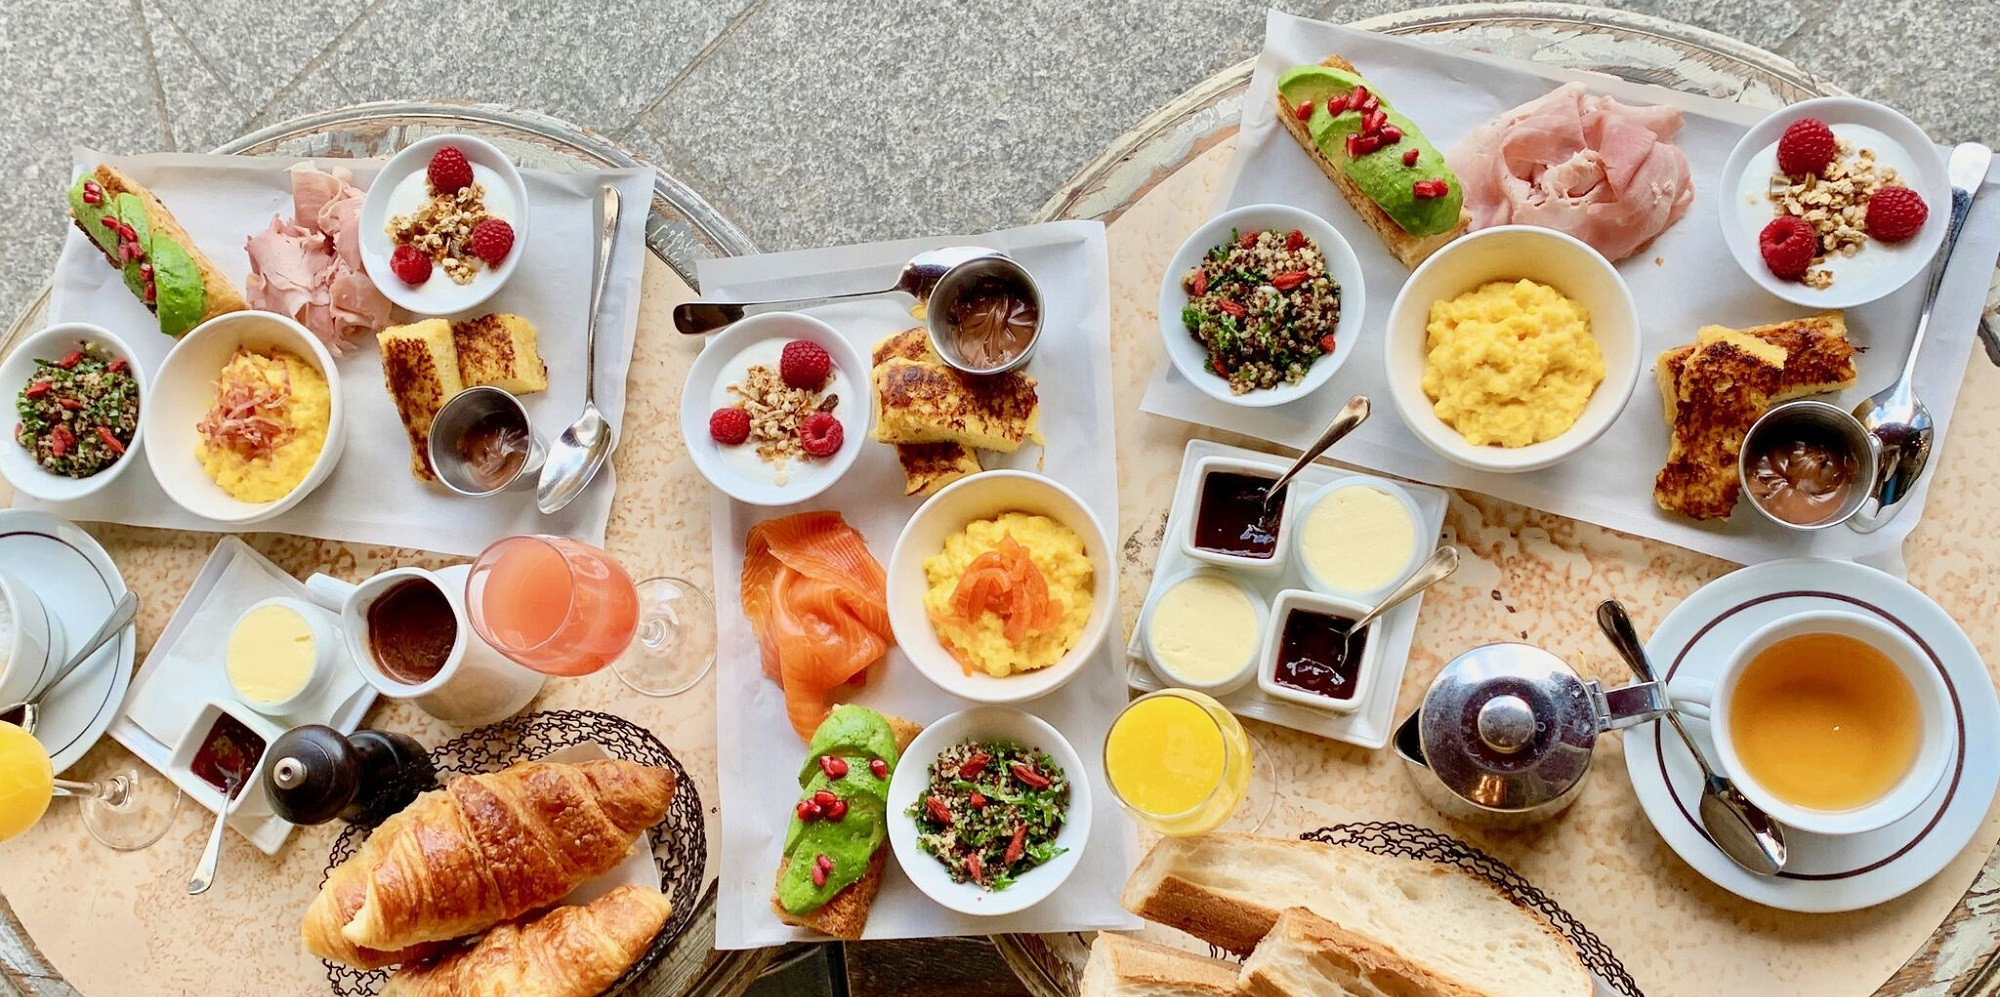 Brunch Le Petit Poucet (75017 Paris)